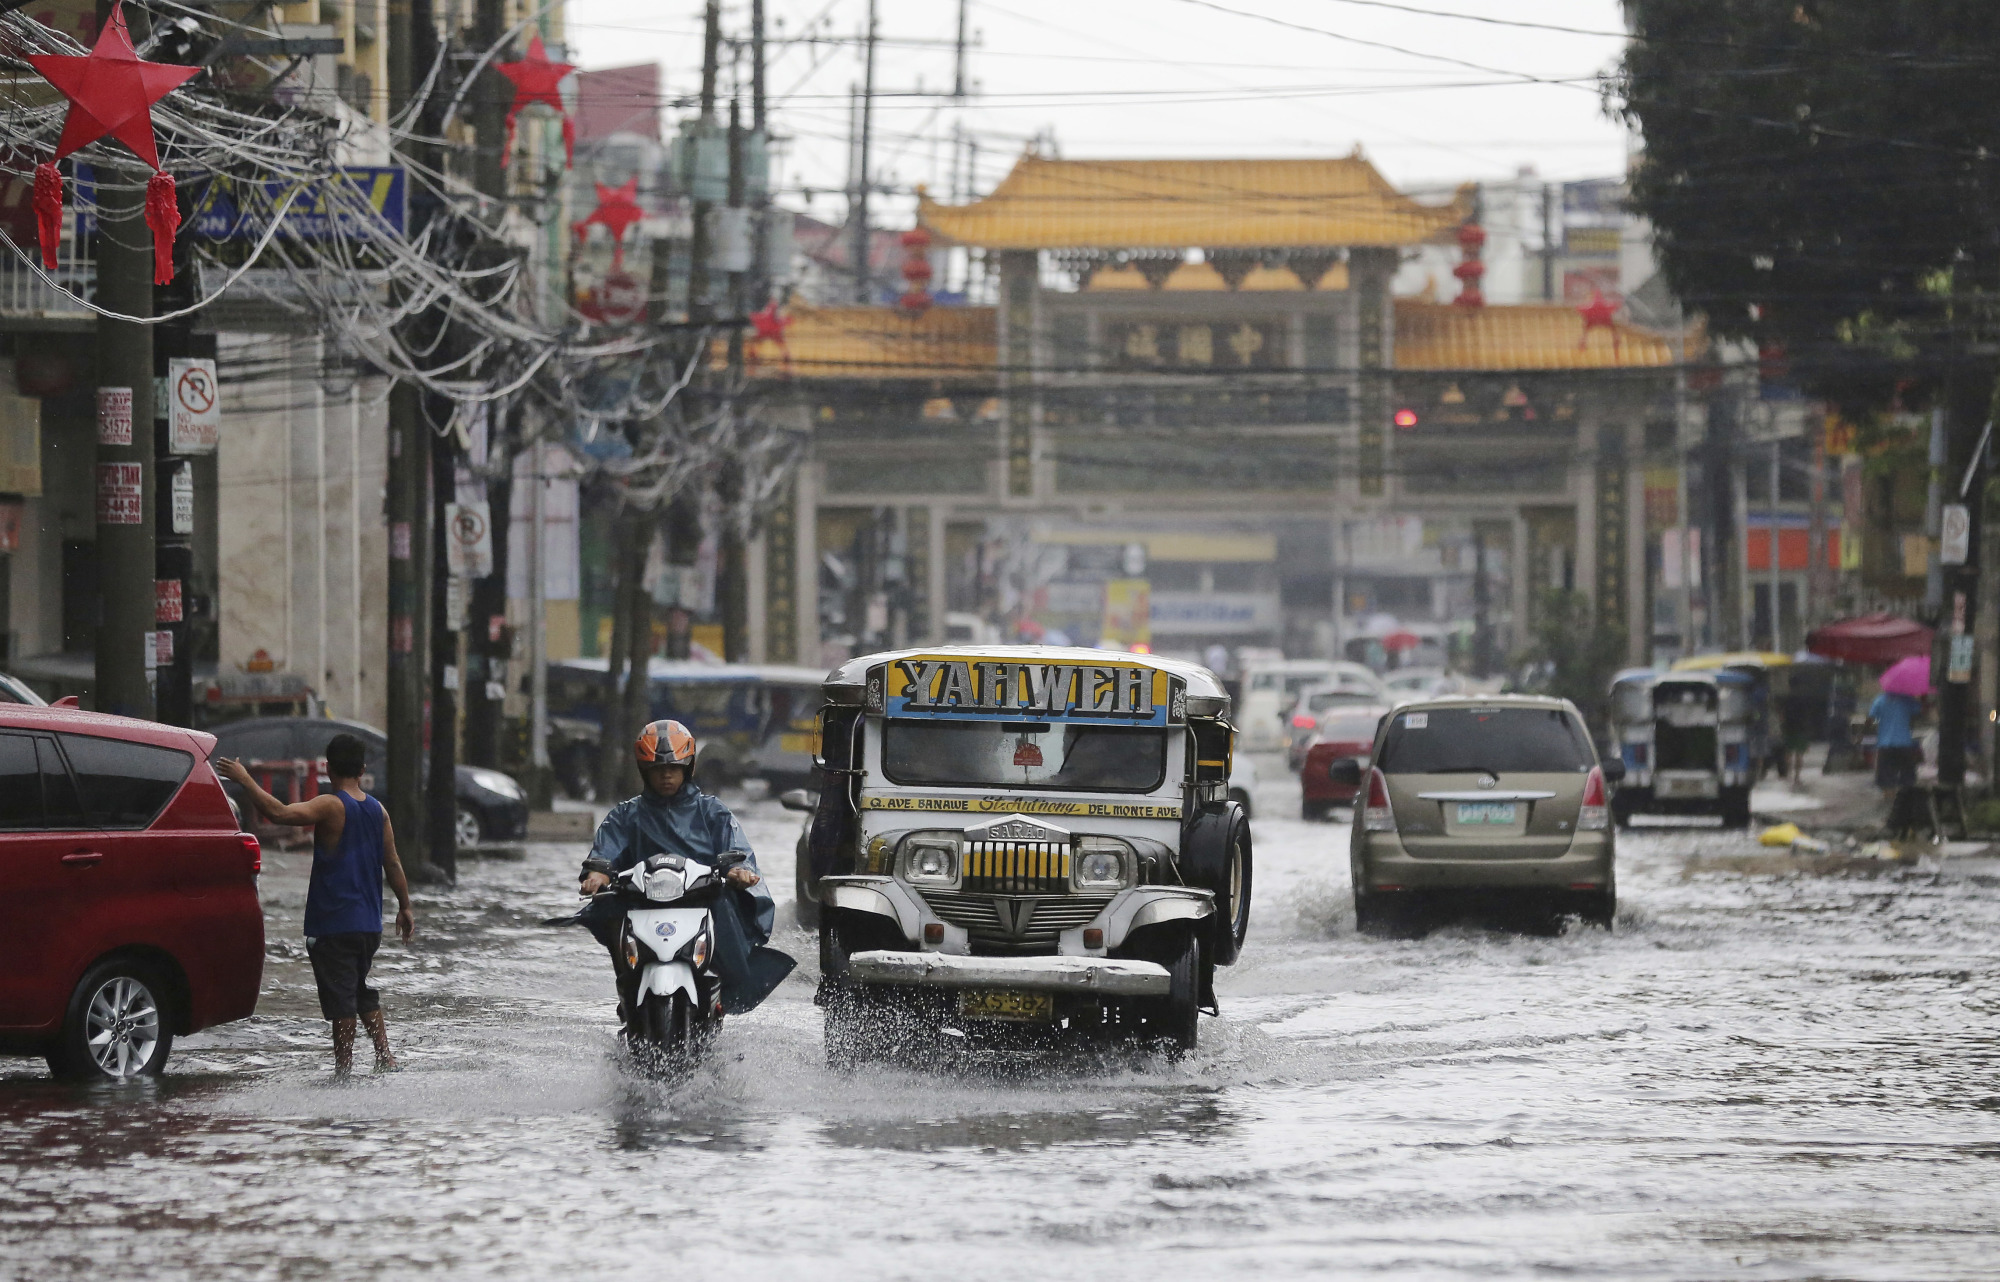 A jeepney navigates a flooded street in Quezon City, north of Manila, following heavy rain after Typhoon Nock-Ten hit the Philippines on Monday. | AP